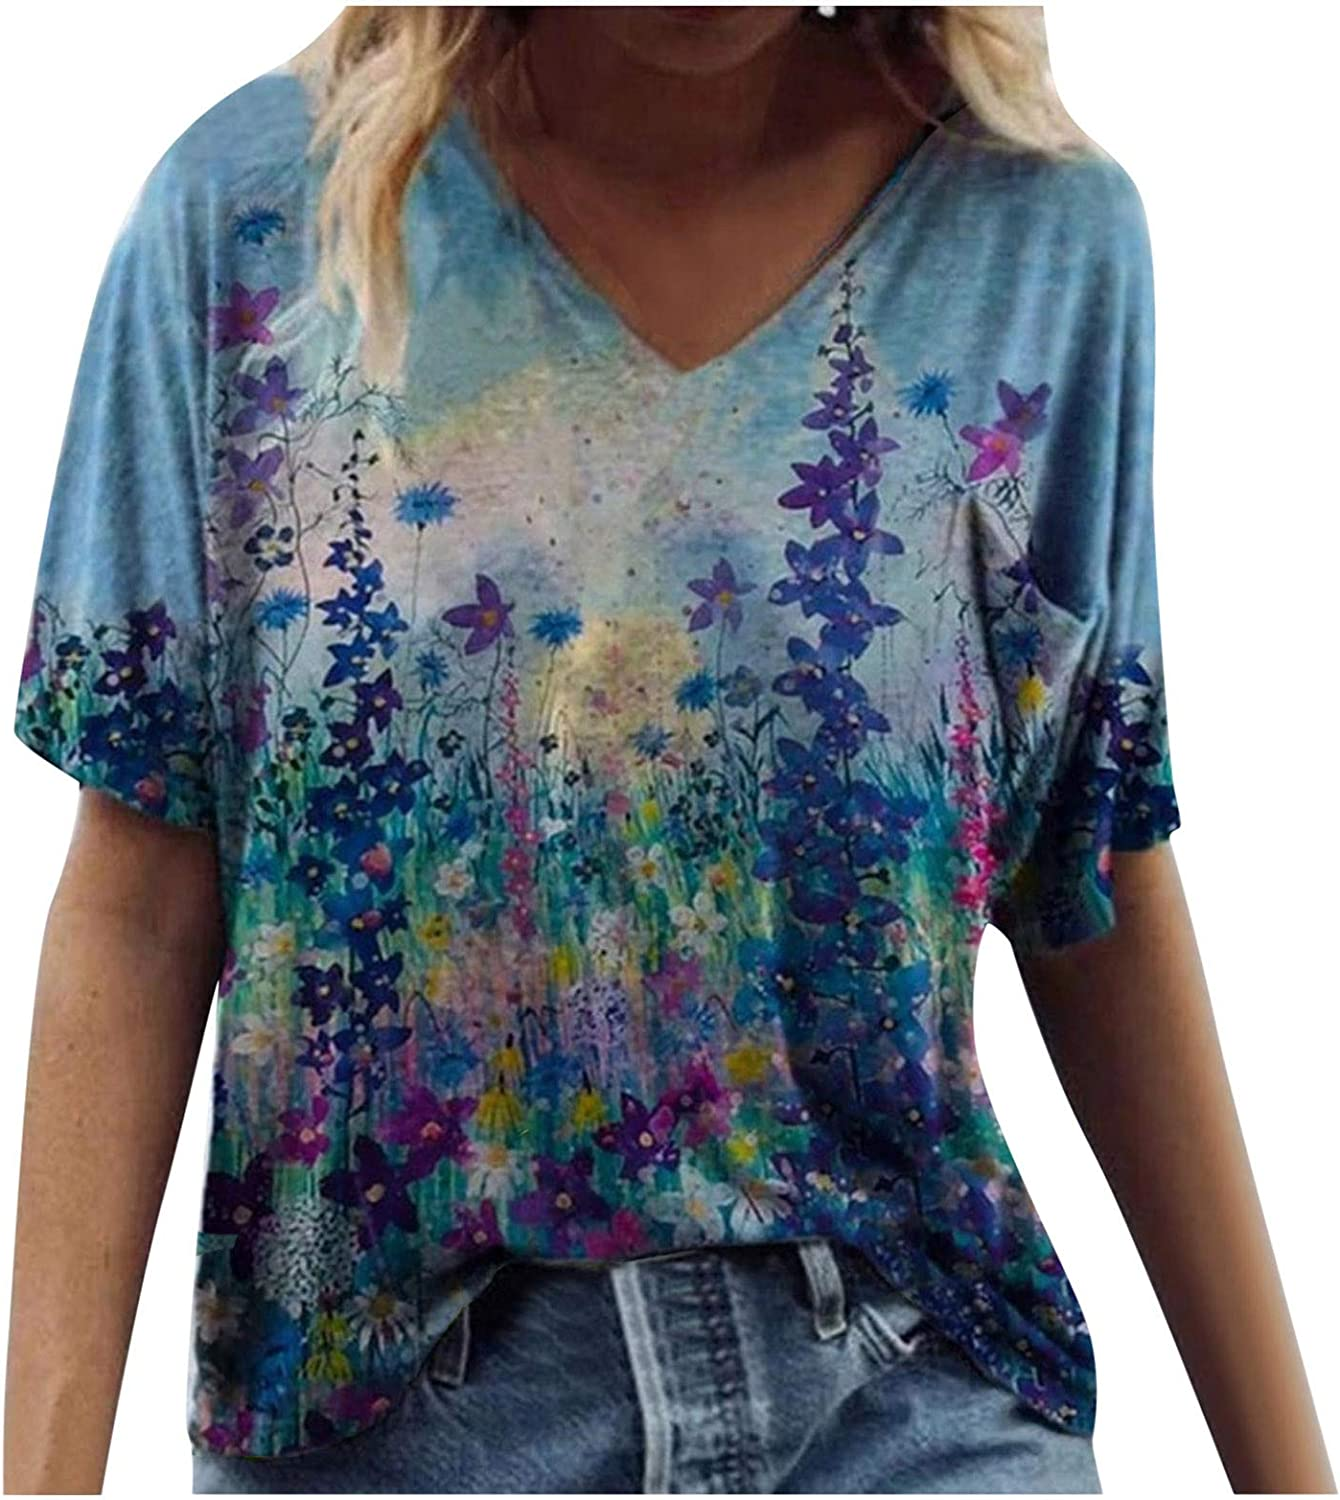 Womens Short Sleeve Tops, naioewe Butterfly Graphic Tees for Women Casual Tie Dye Print T-Shirt V-Neck Loose Blouse Tops